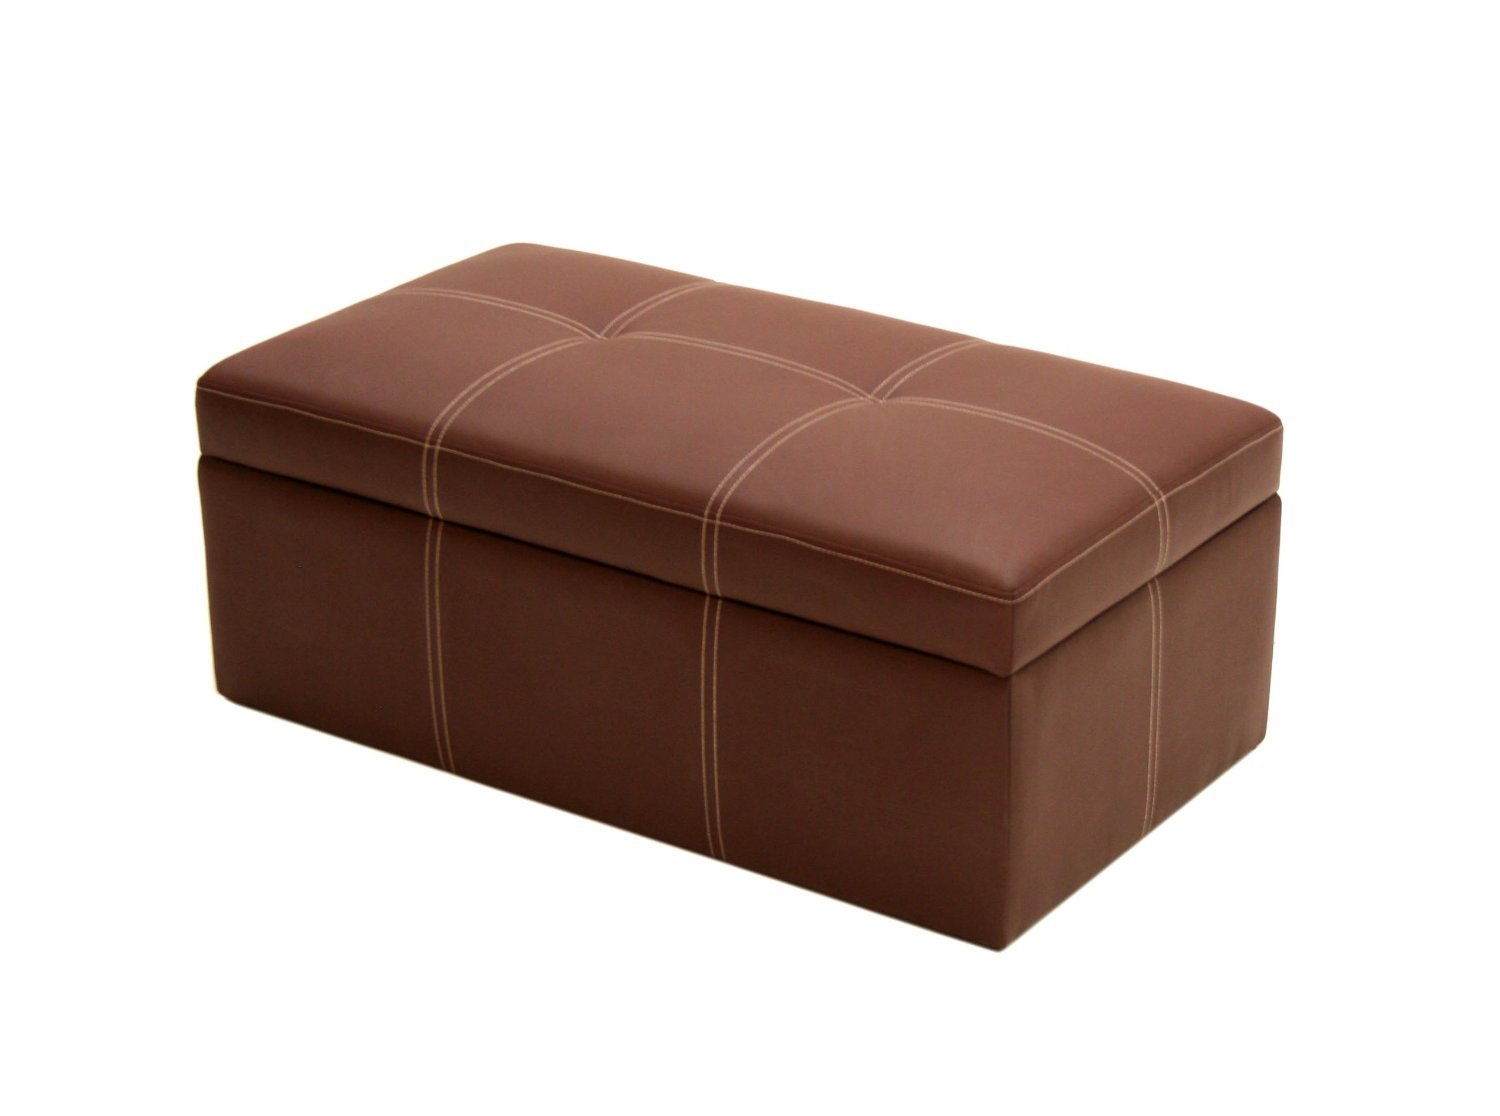 Brown faux leather large rectangle ottoman storage seat for Storage ottoman seat